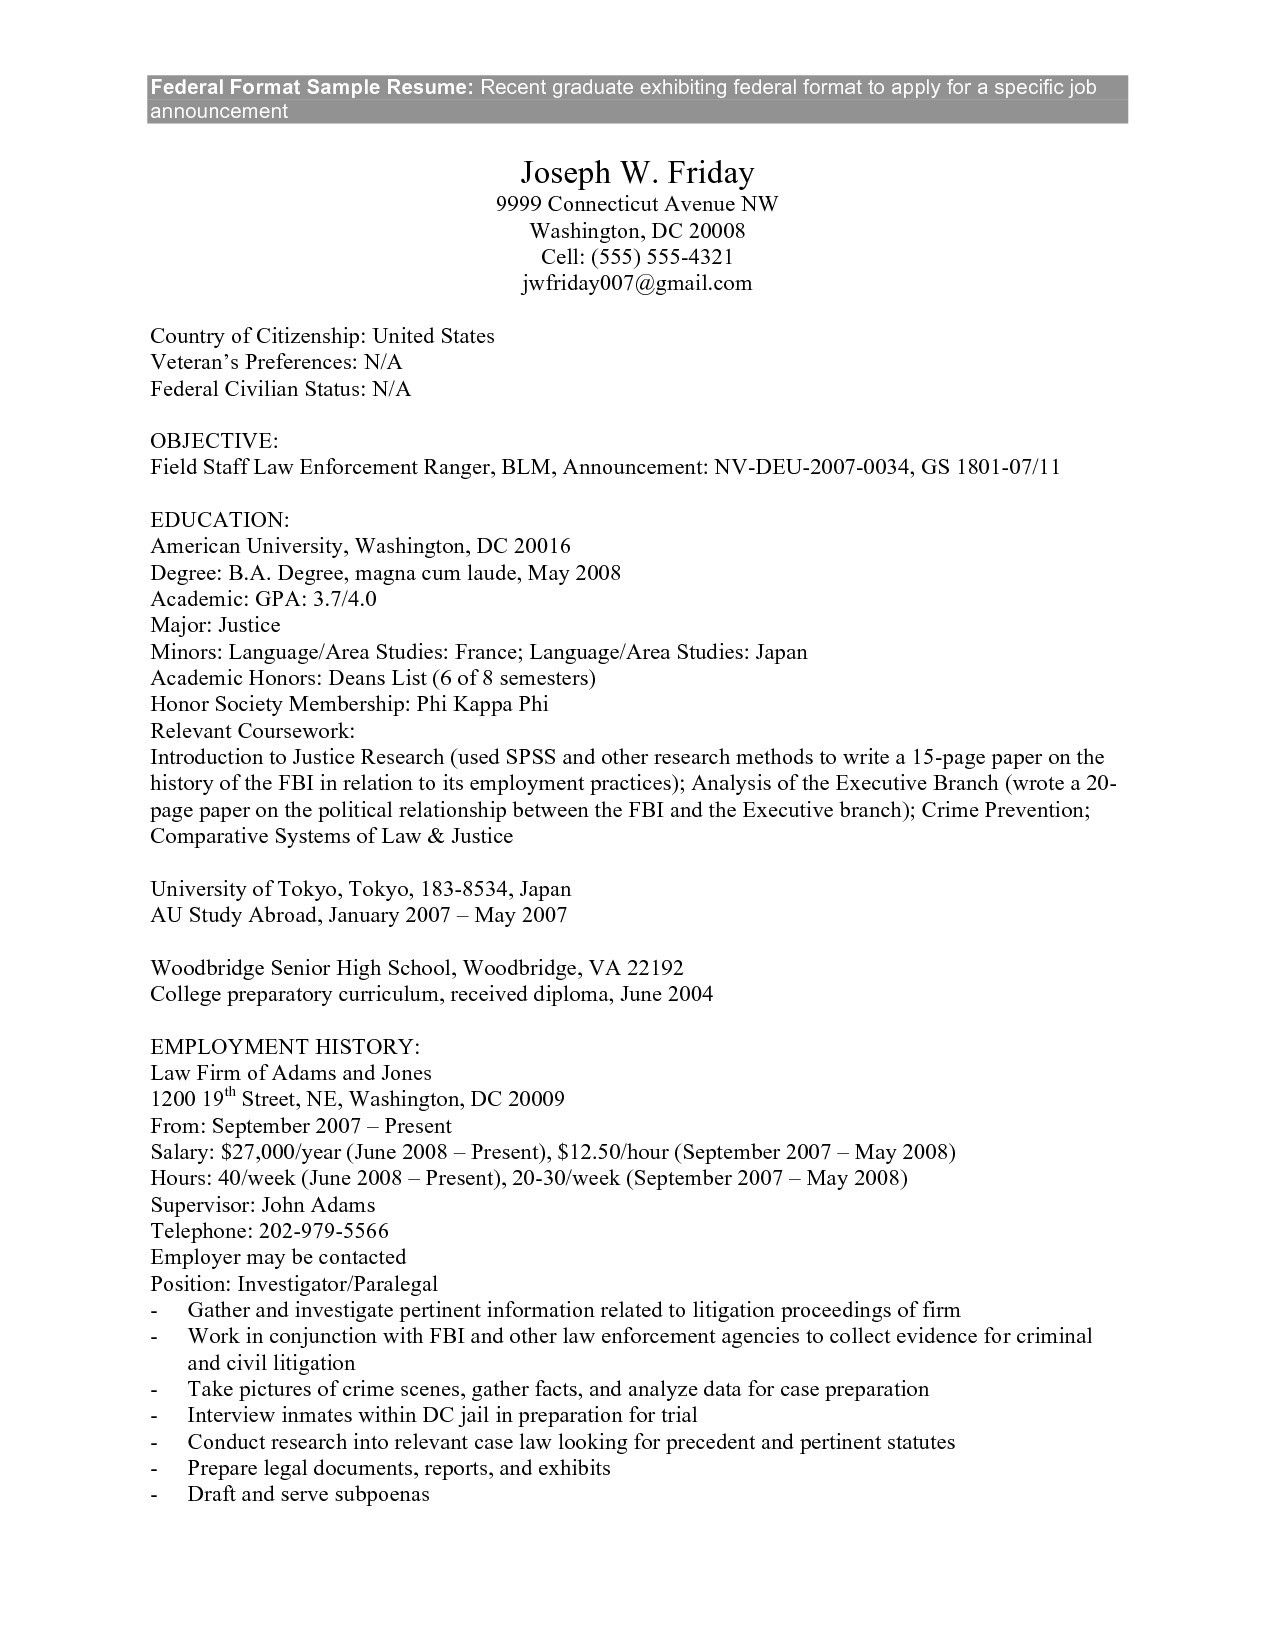 federal government resume writing services best usajobs for veterans free sample cnc Resume Federal Resume Writing Services For Veterans